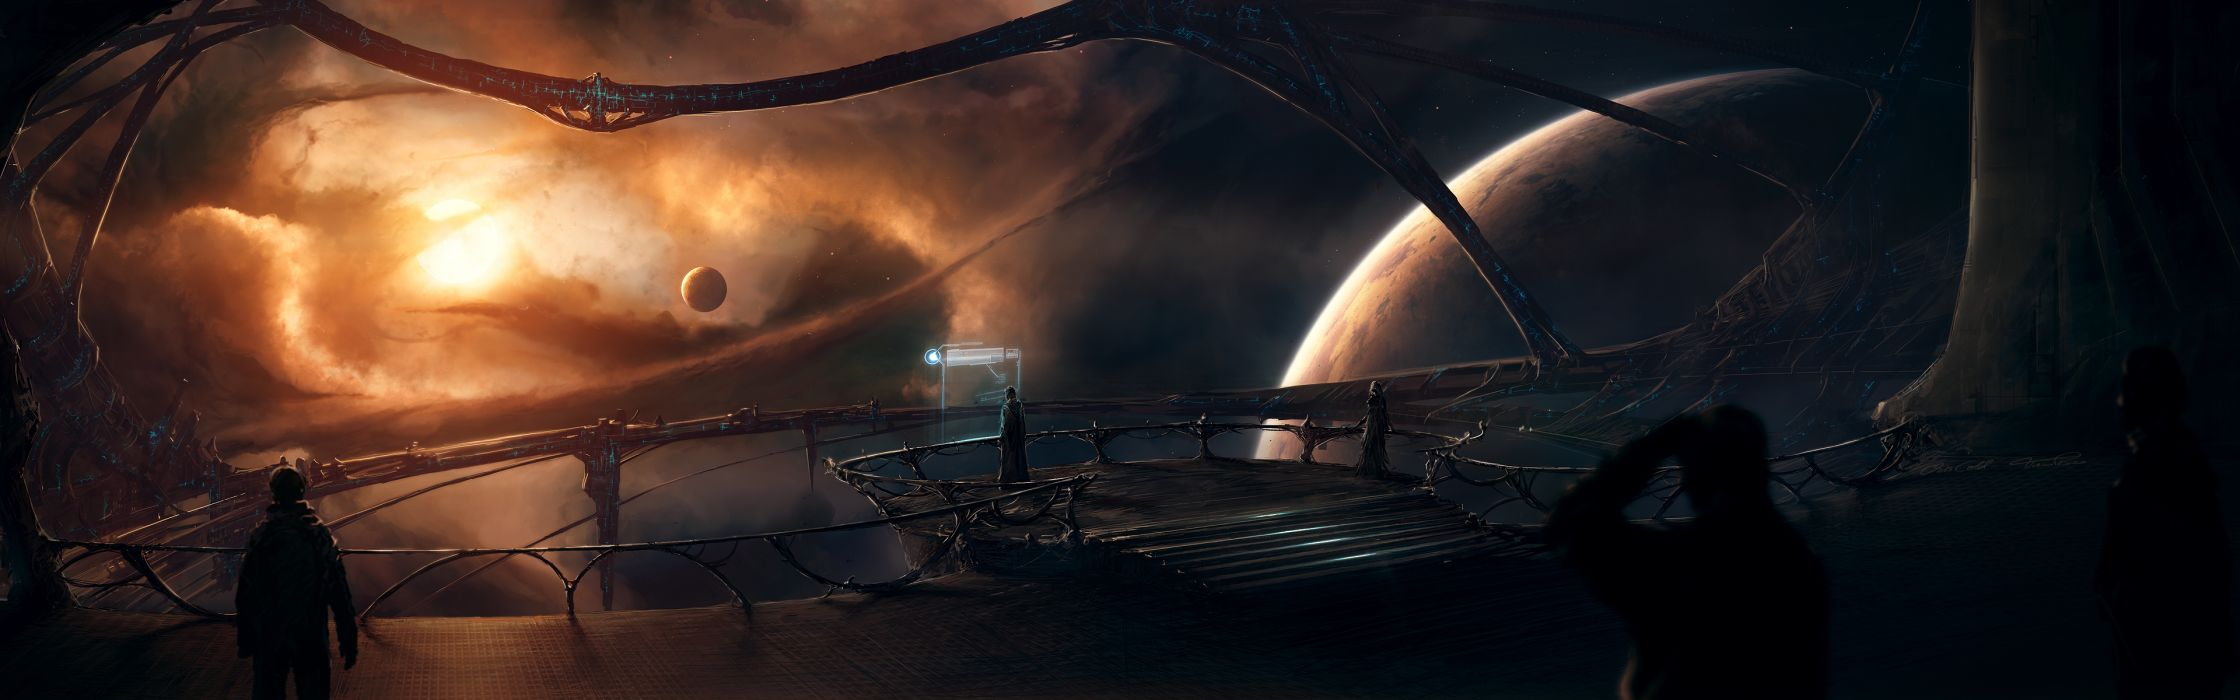 Outer space planets science fiction artwork wallpaper